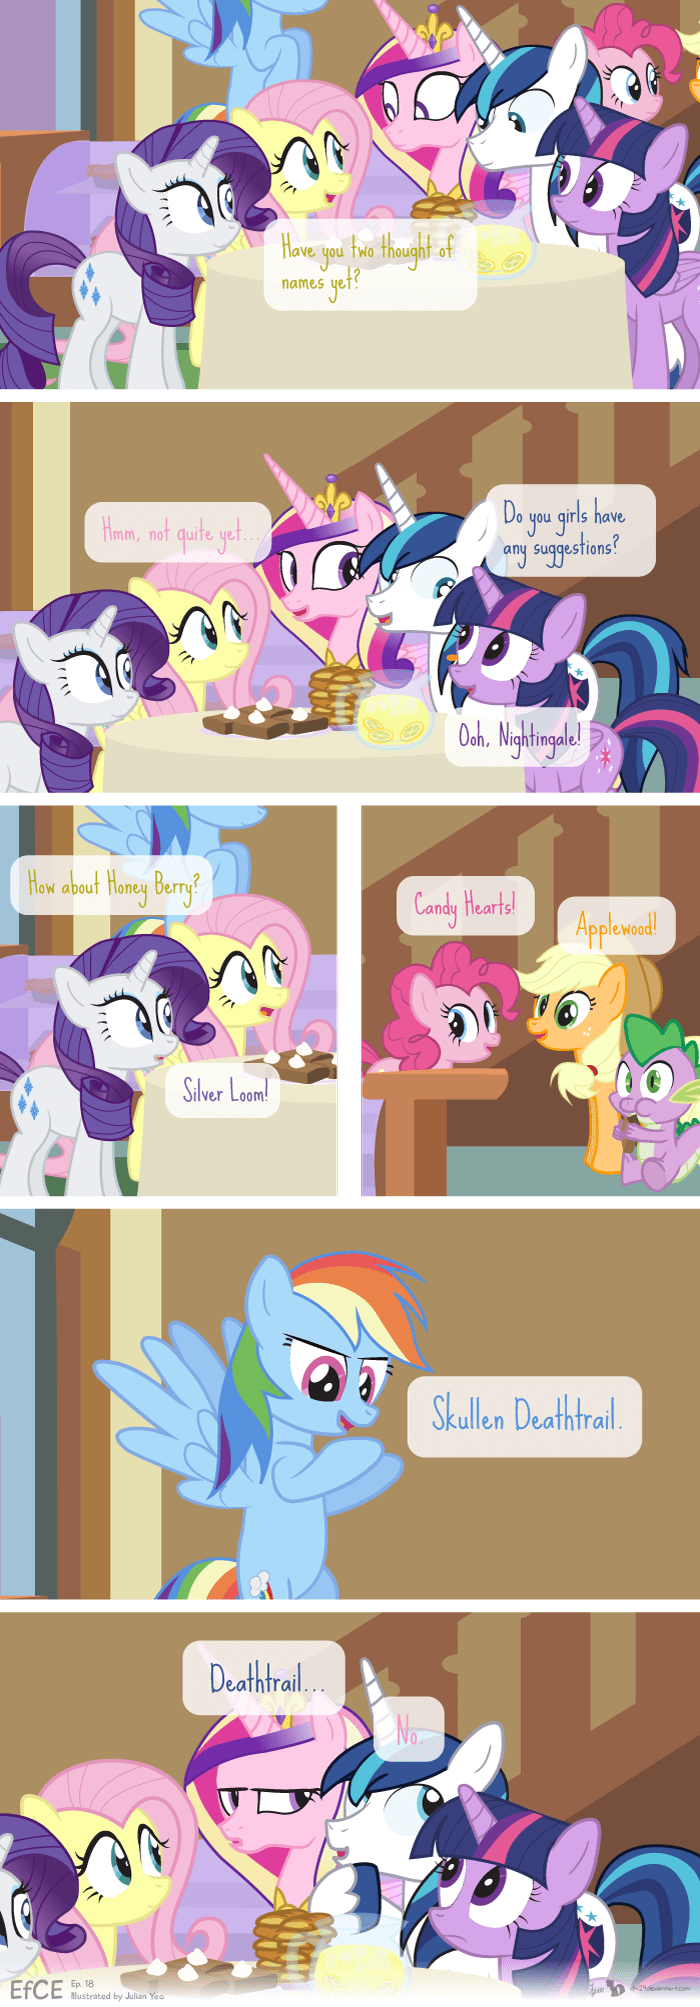 applejack,baby names,princess cadence,twilight sparkle,shining armor,pinkie pie,rarity,fluttershy,rainbow dash